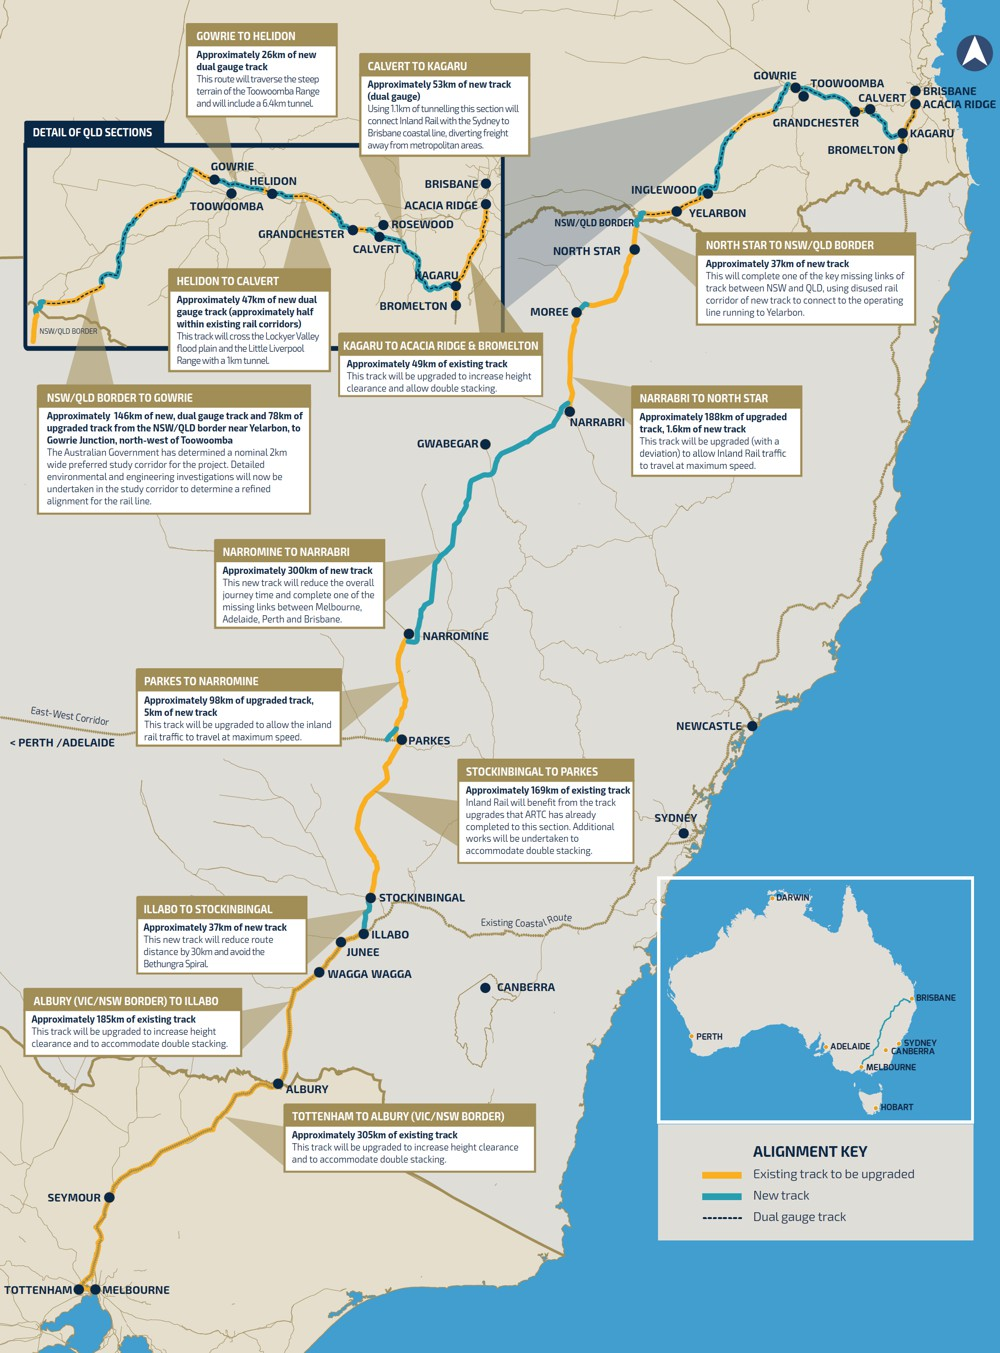 Inland Rail Alignment Map